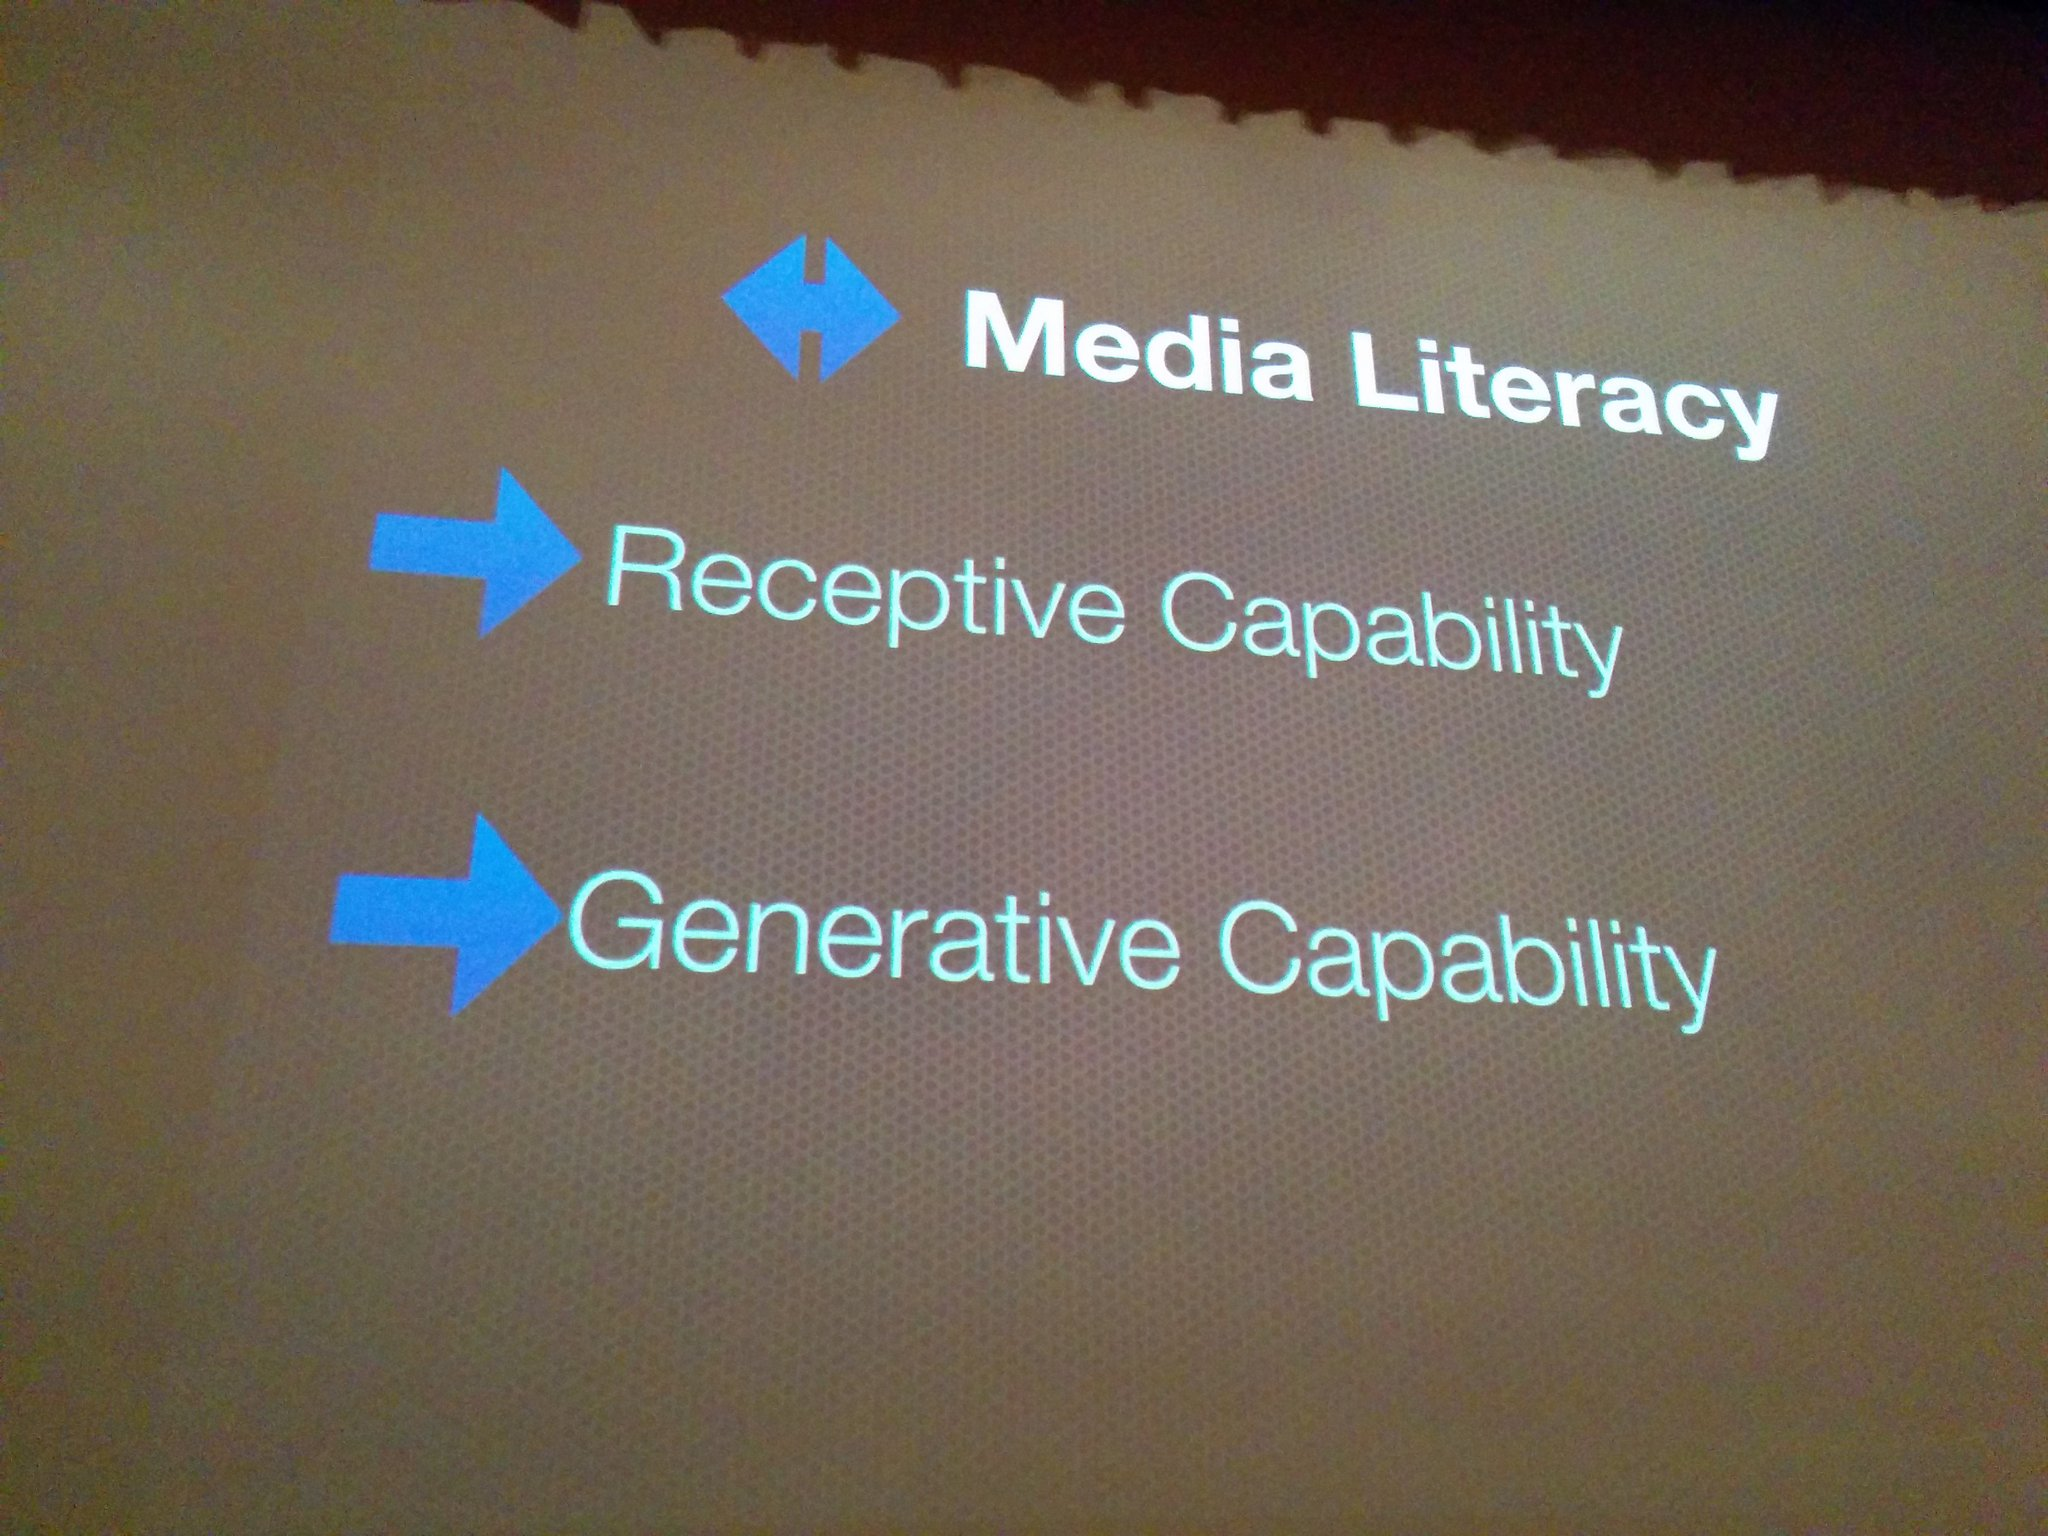 Media literacy.  My homework. @HeidiHayesJacob @learning_at_aas https://t.co/BWw1JFuKCC